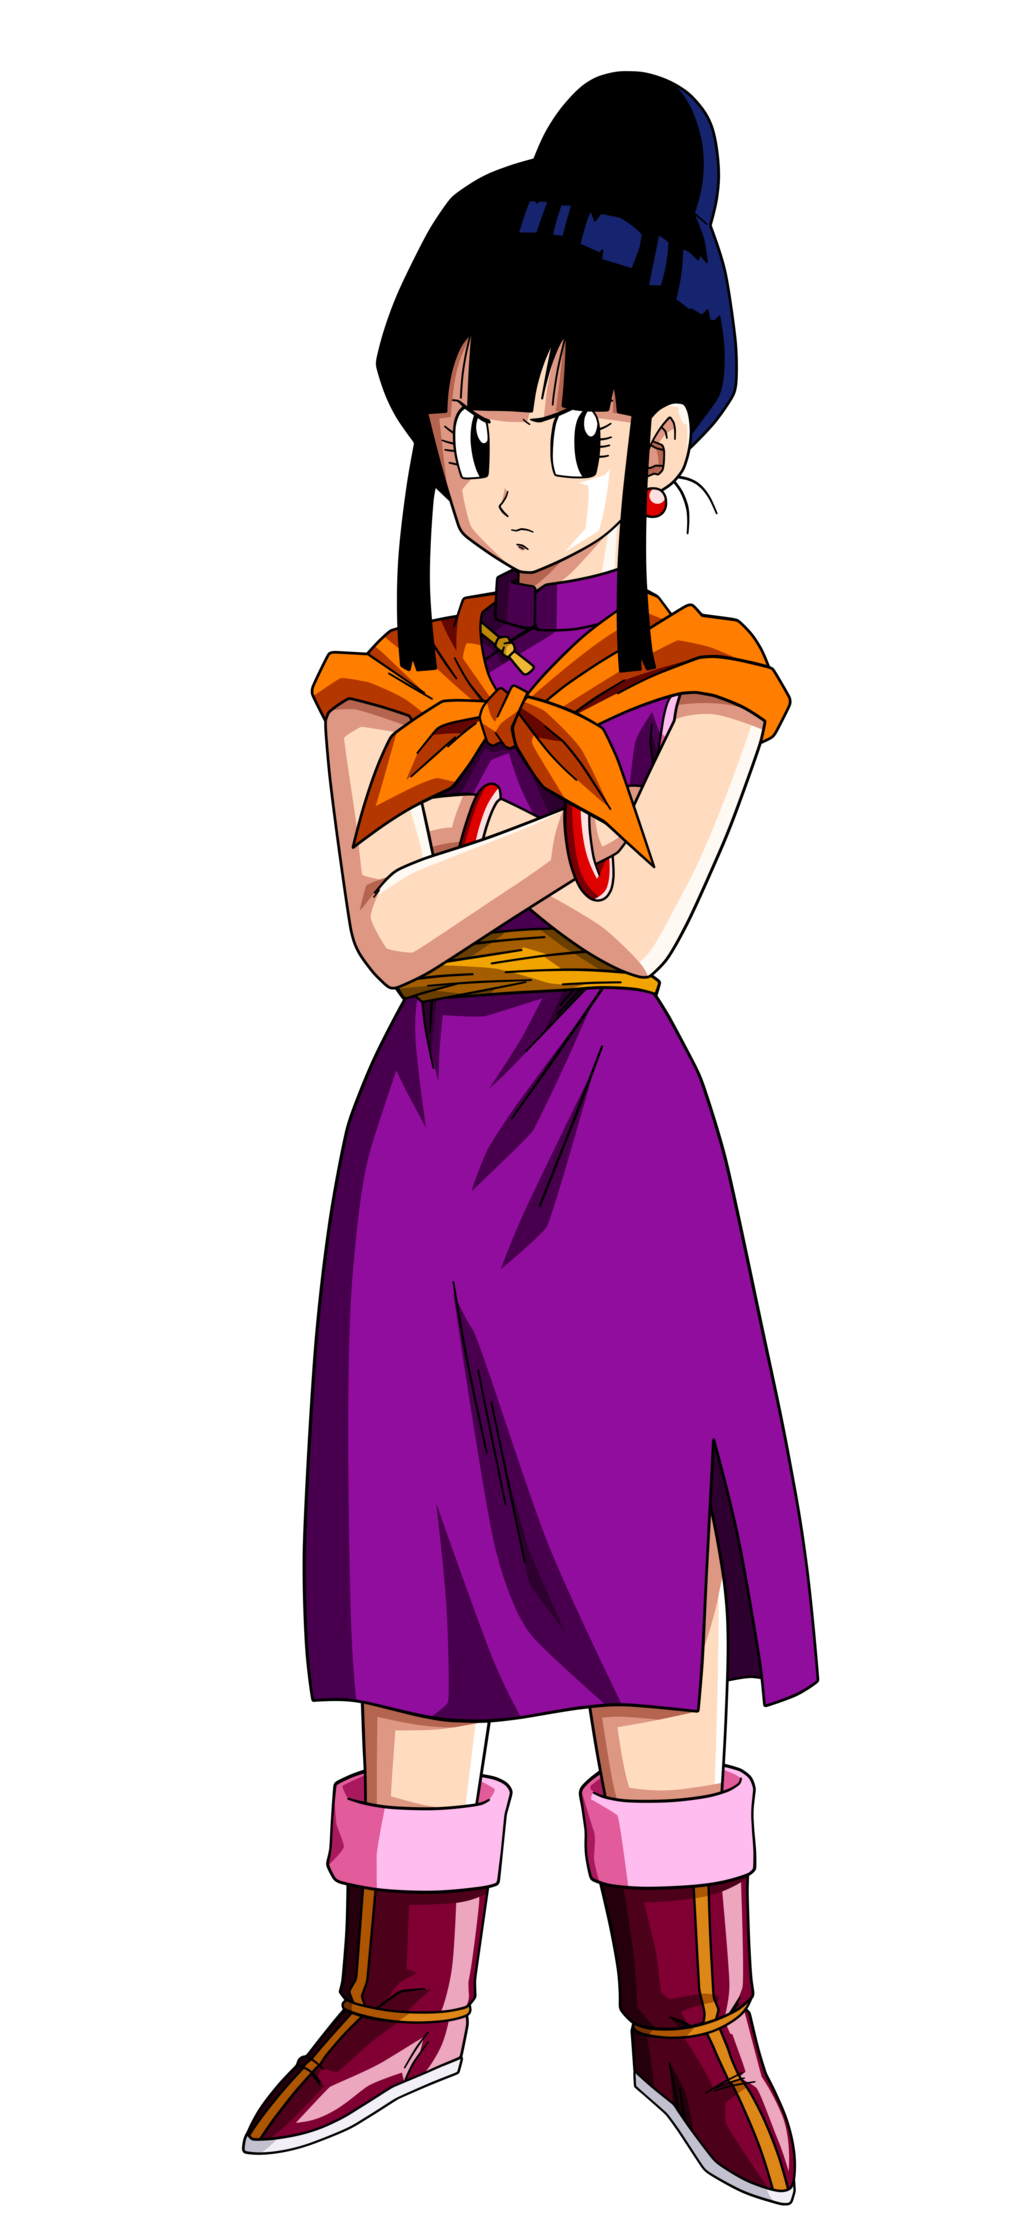 from Dexter gohan and wife porn